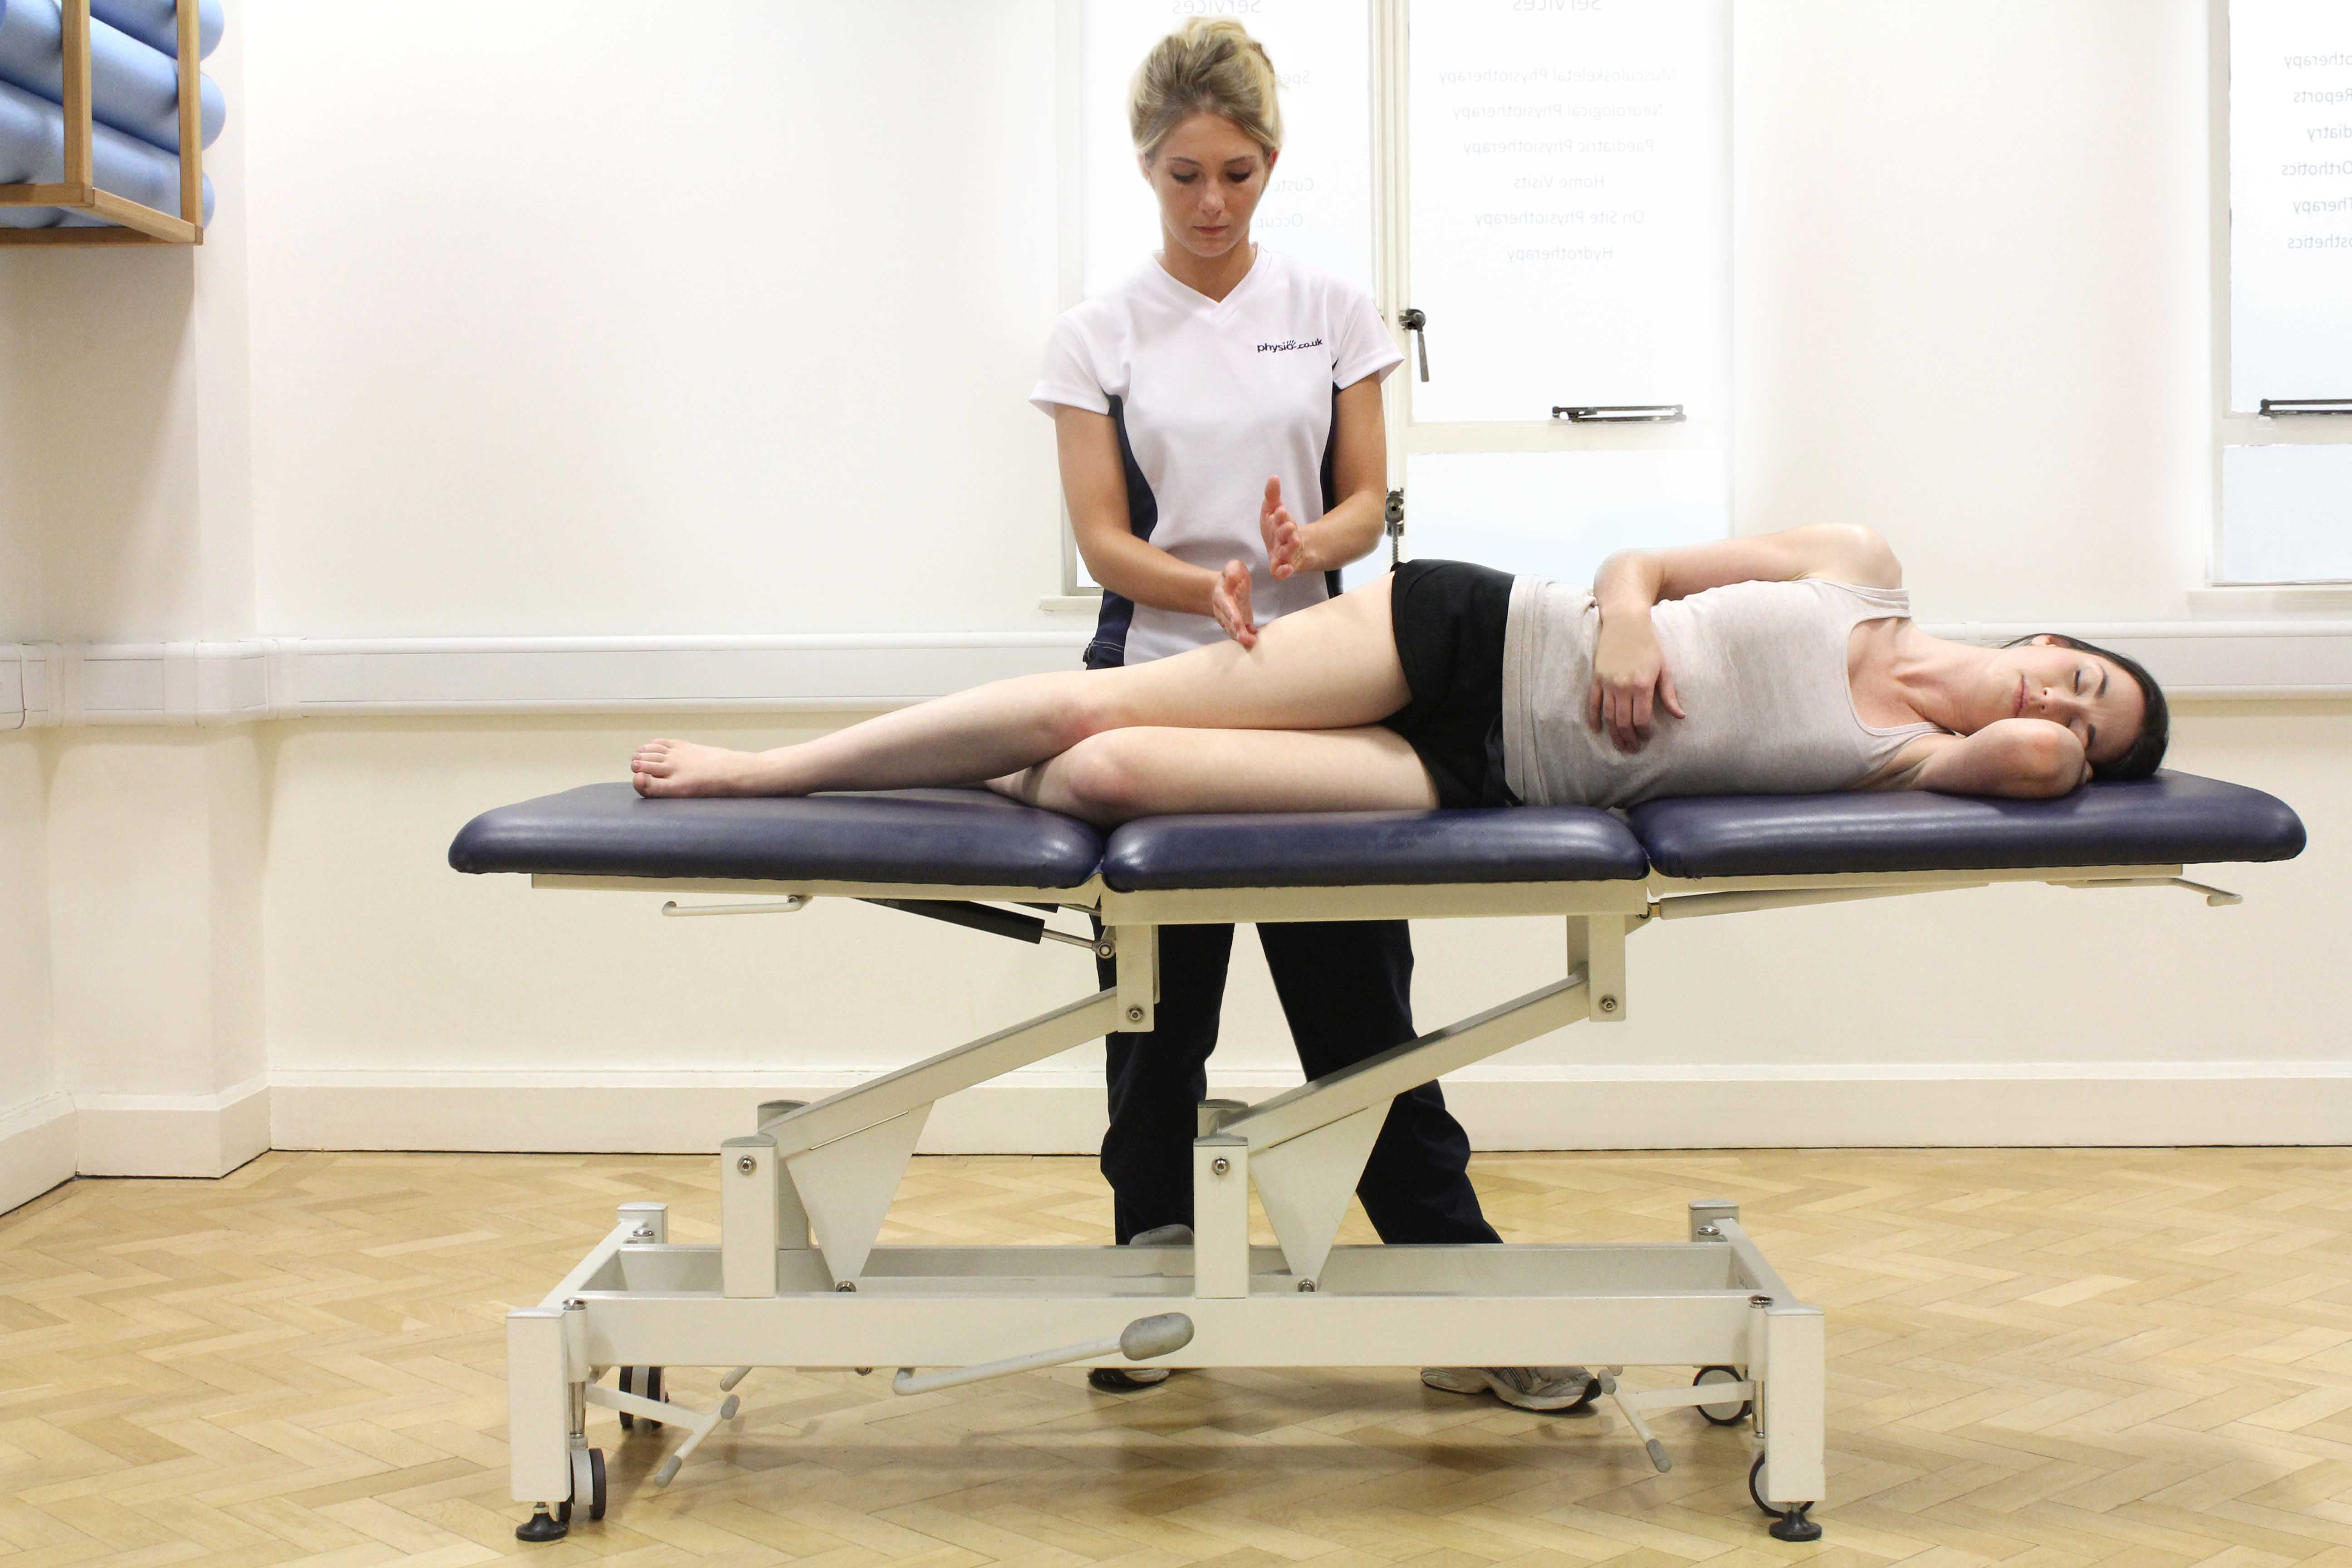 Hacking percussion massage of the IT band and vastus lateralis muscle by a specialist MSK therapist